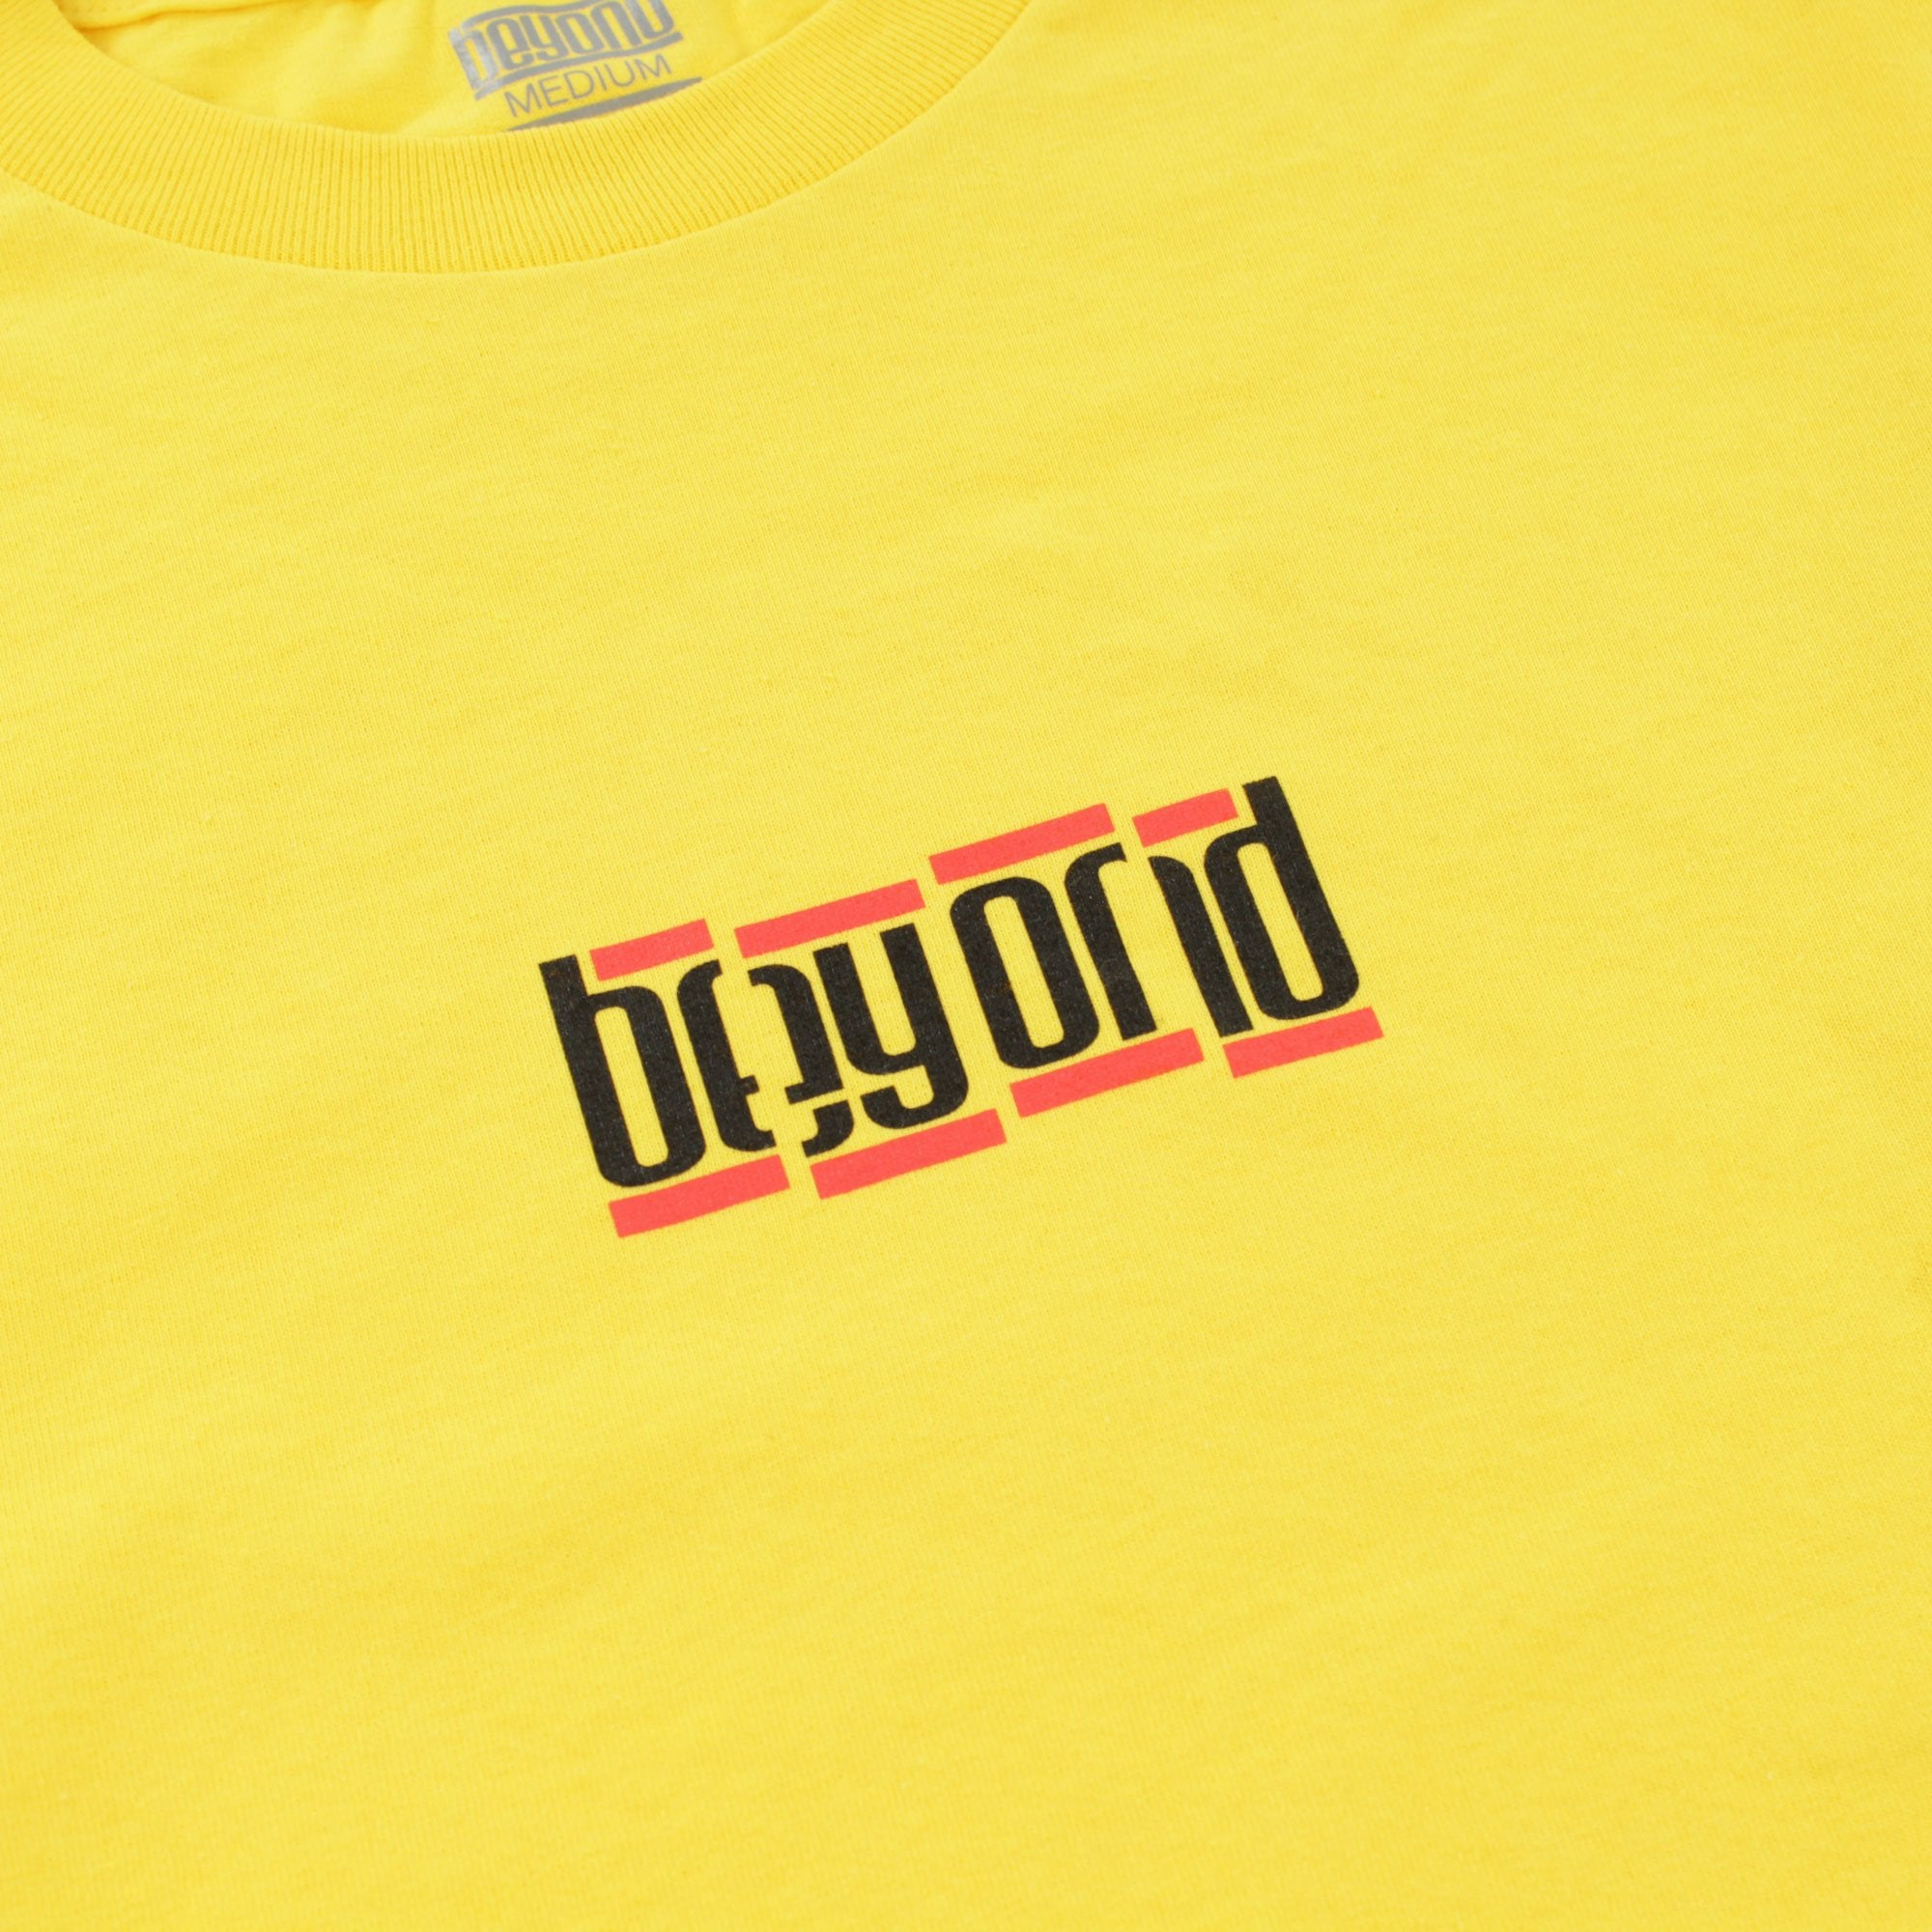 Beyond Cut Up Tee Product Photo #2